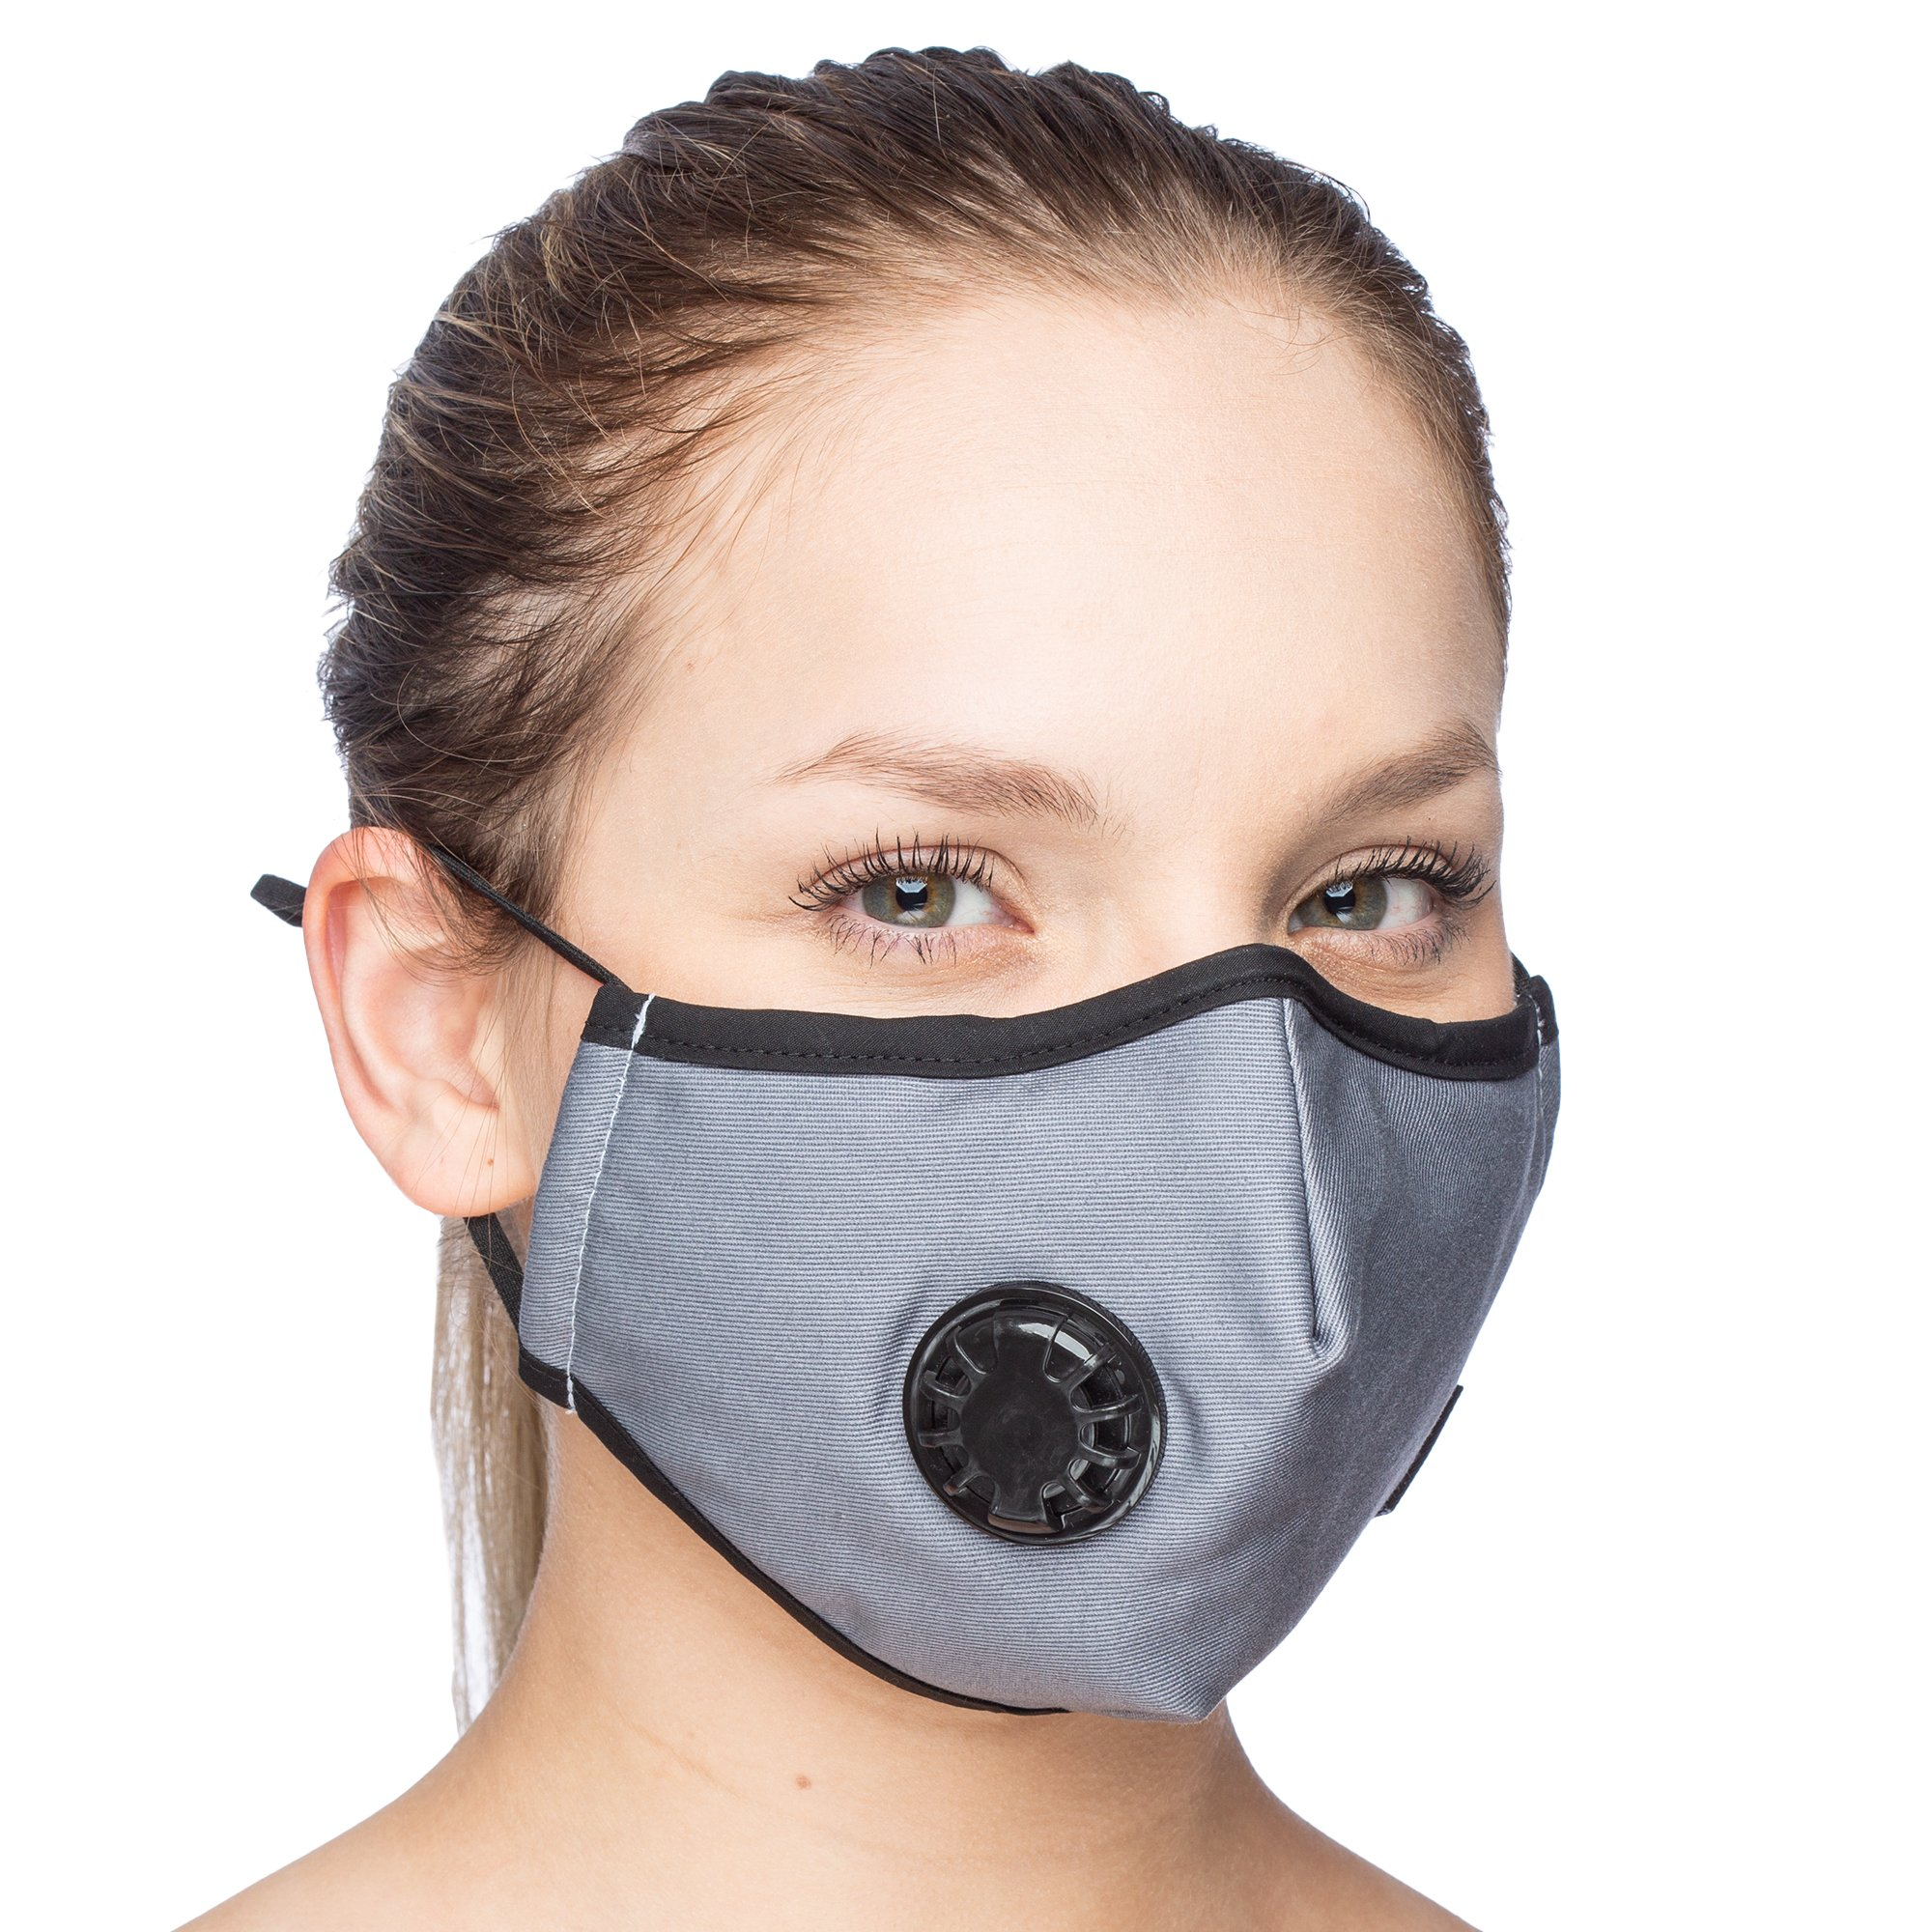 Debrief Me Military Grade N99 (4 Masks) Carbon Activated Anti Dust Face Mouth Cover Mask Respirator-Dustproof Anti-bacterial Washable -Reusable Respirator Comfy-Cotton(N99-4Color) by Debrief Me (Image #6)